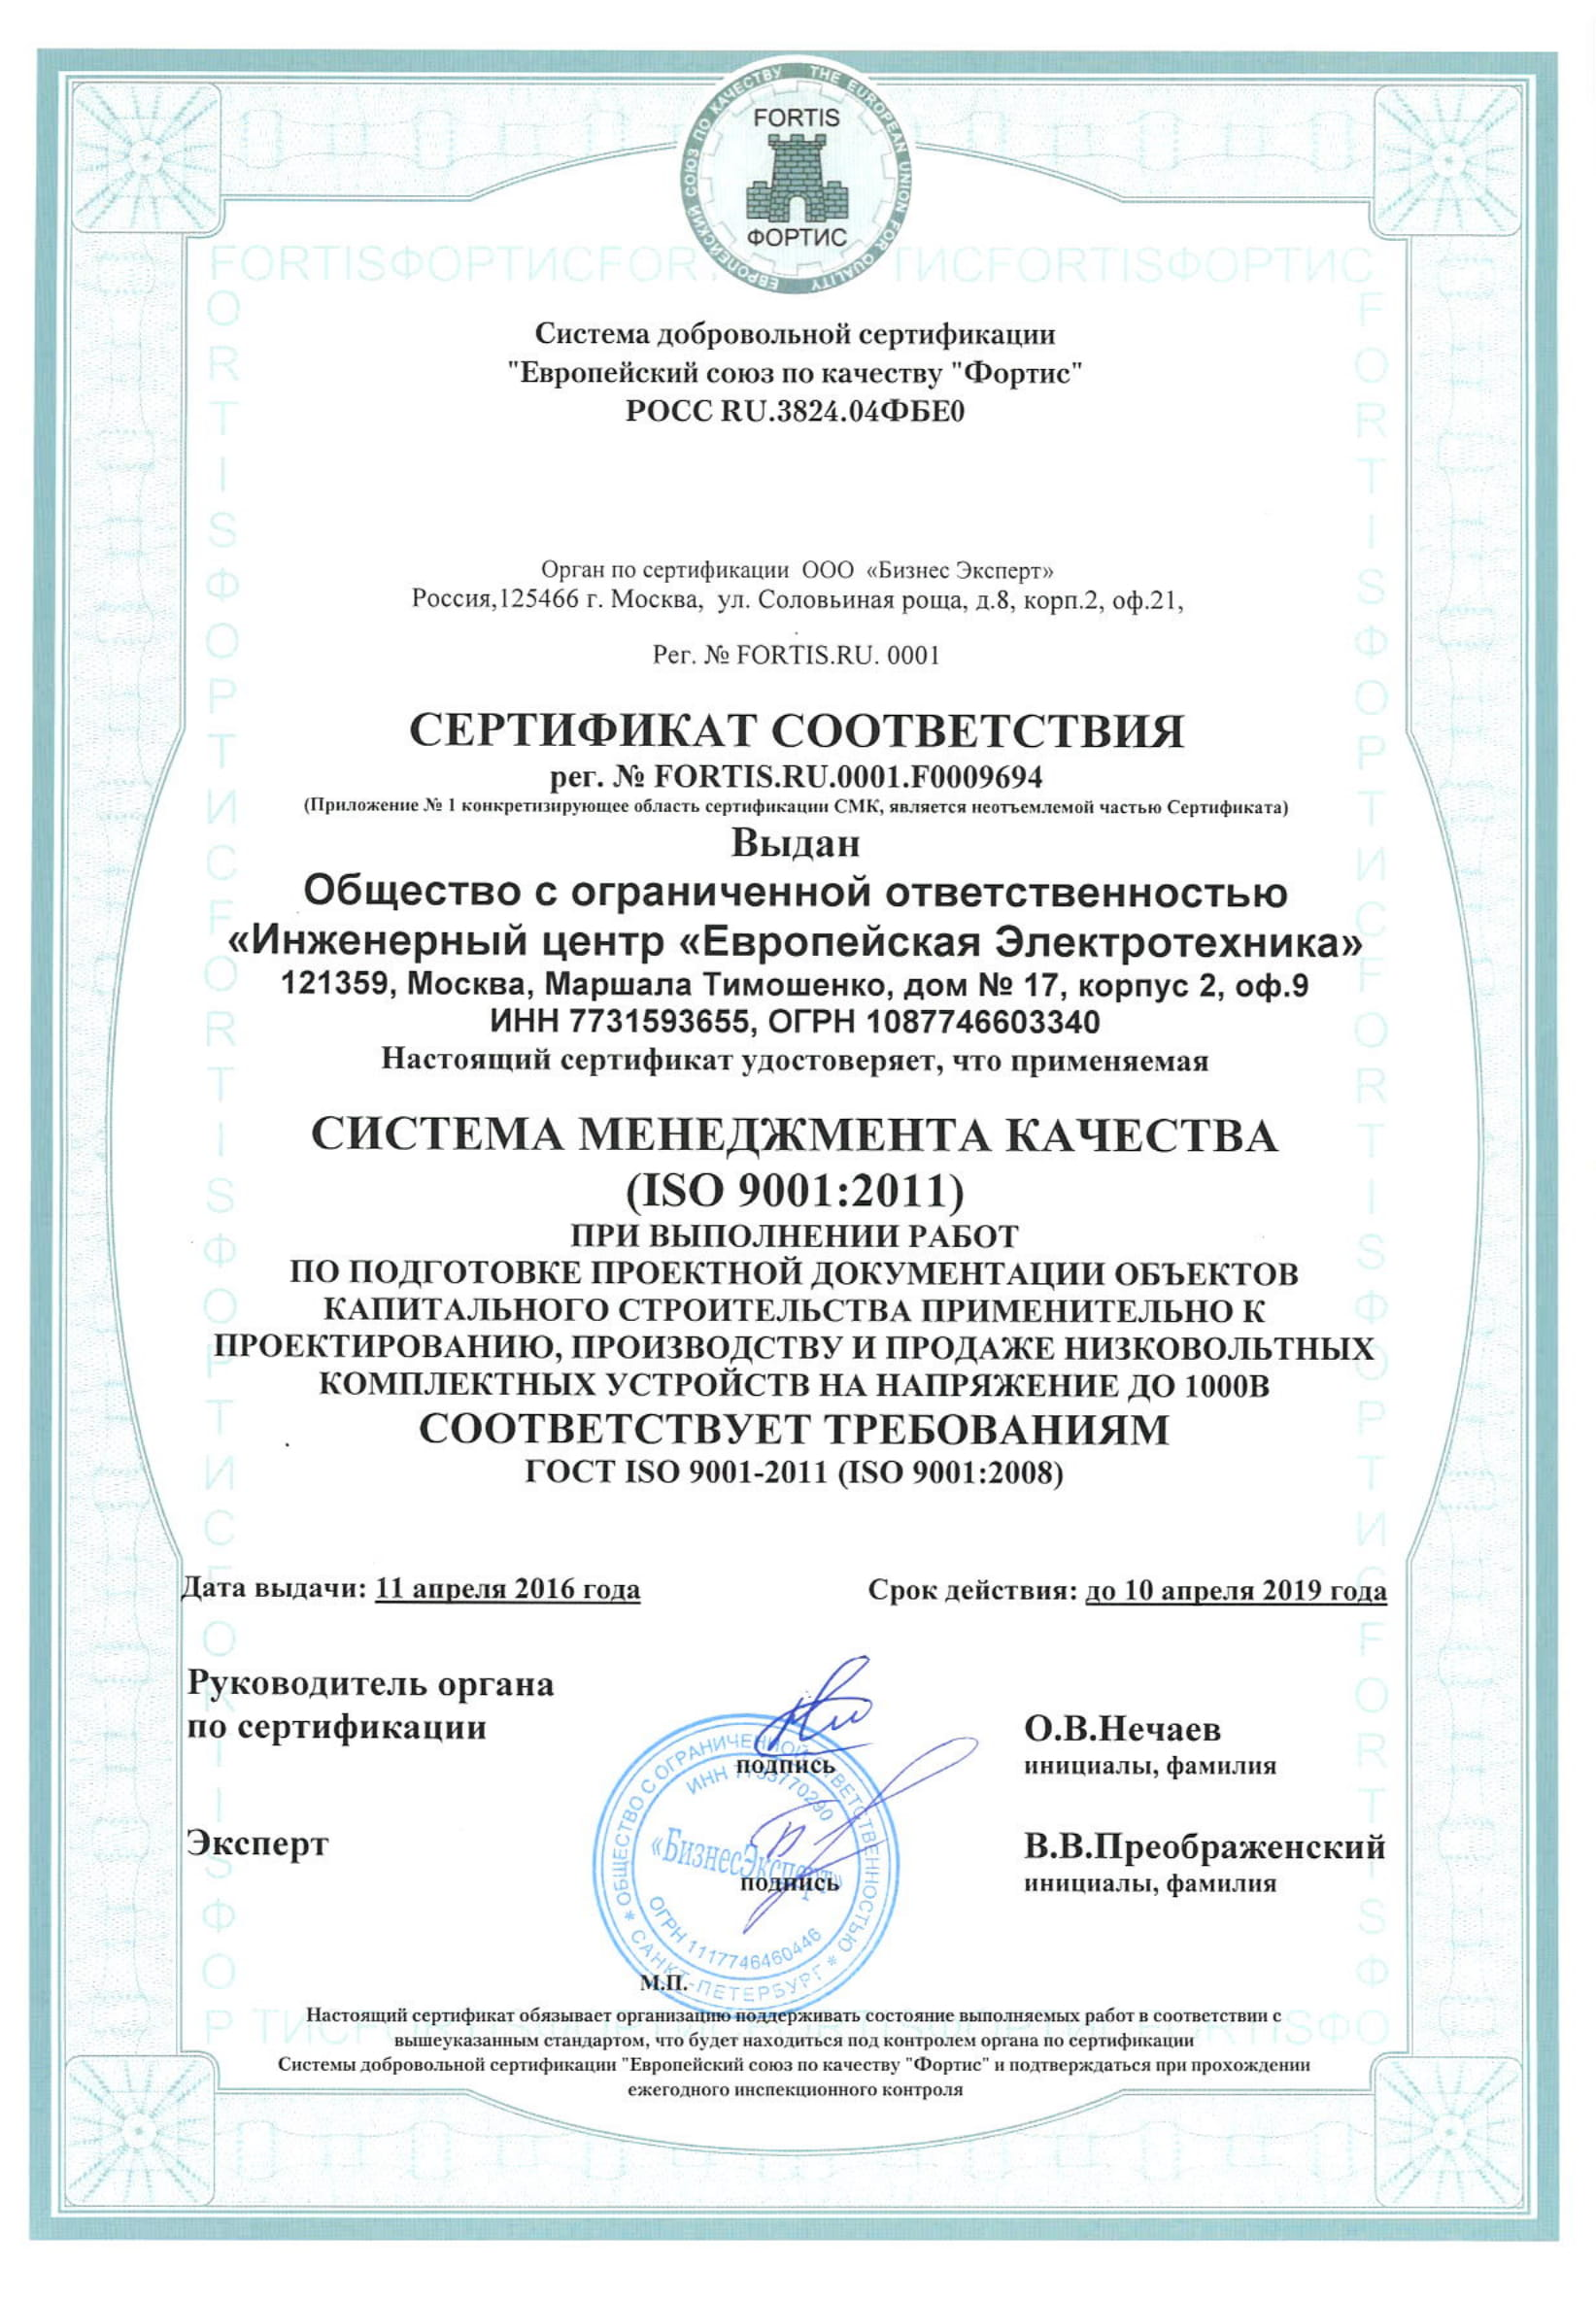 Certificate of Conformity to the Requirements of GOST ISO (Quality Management System)-1